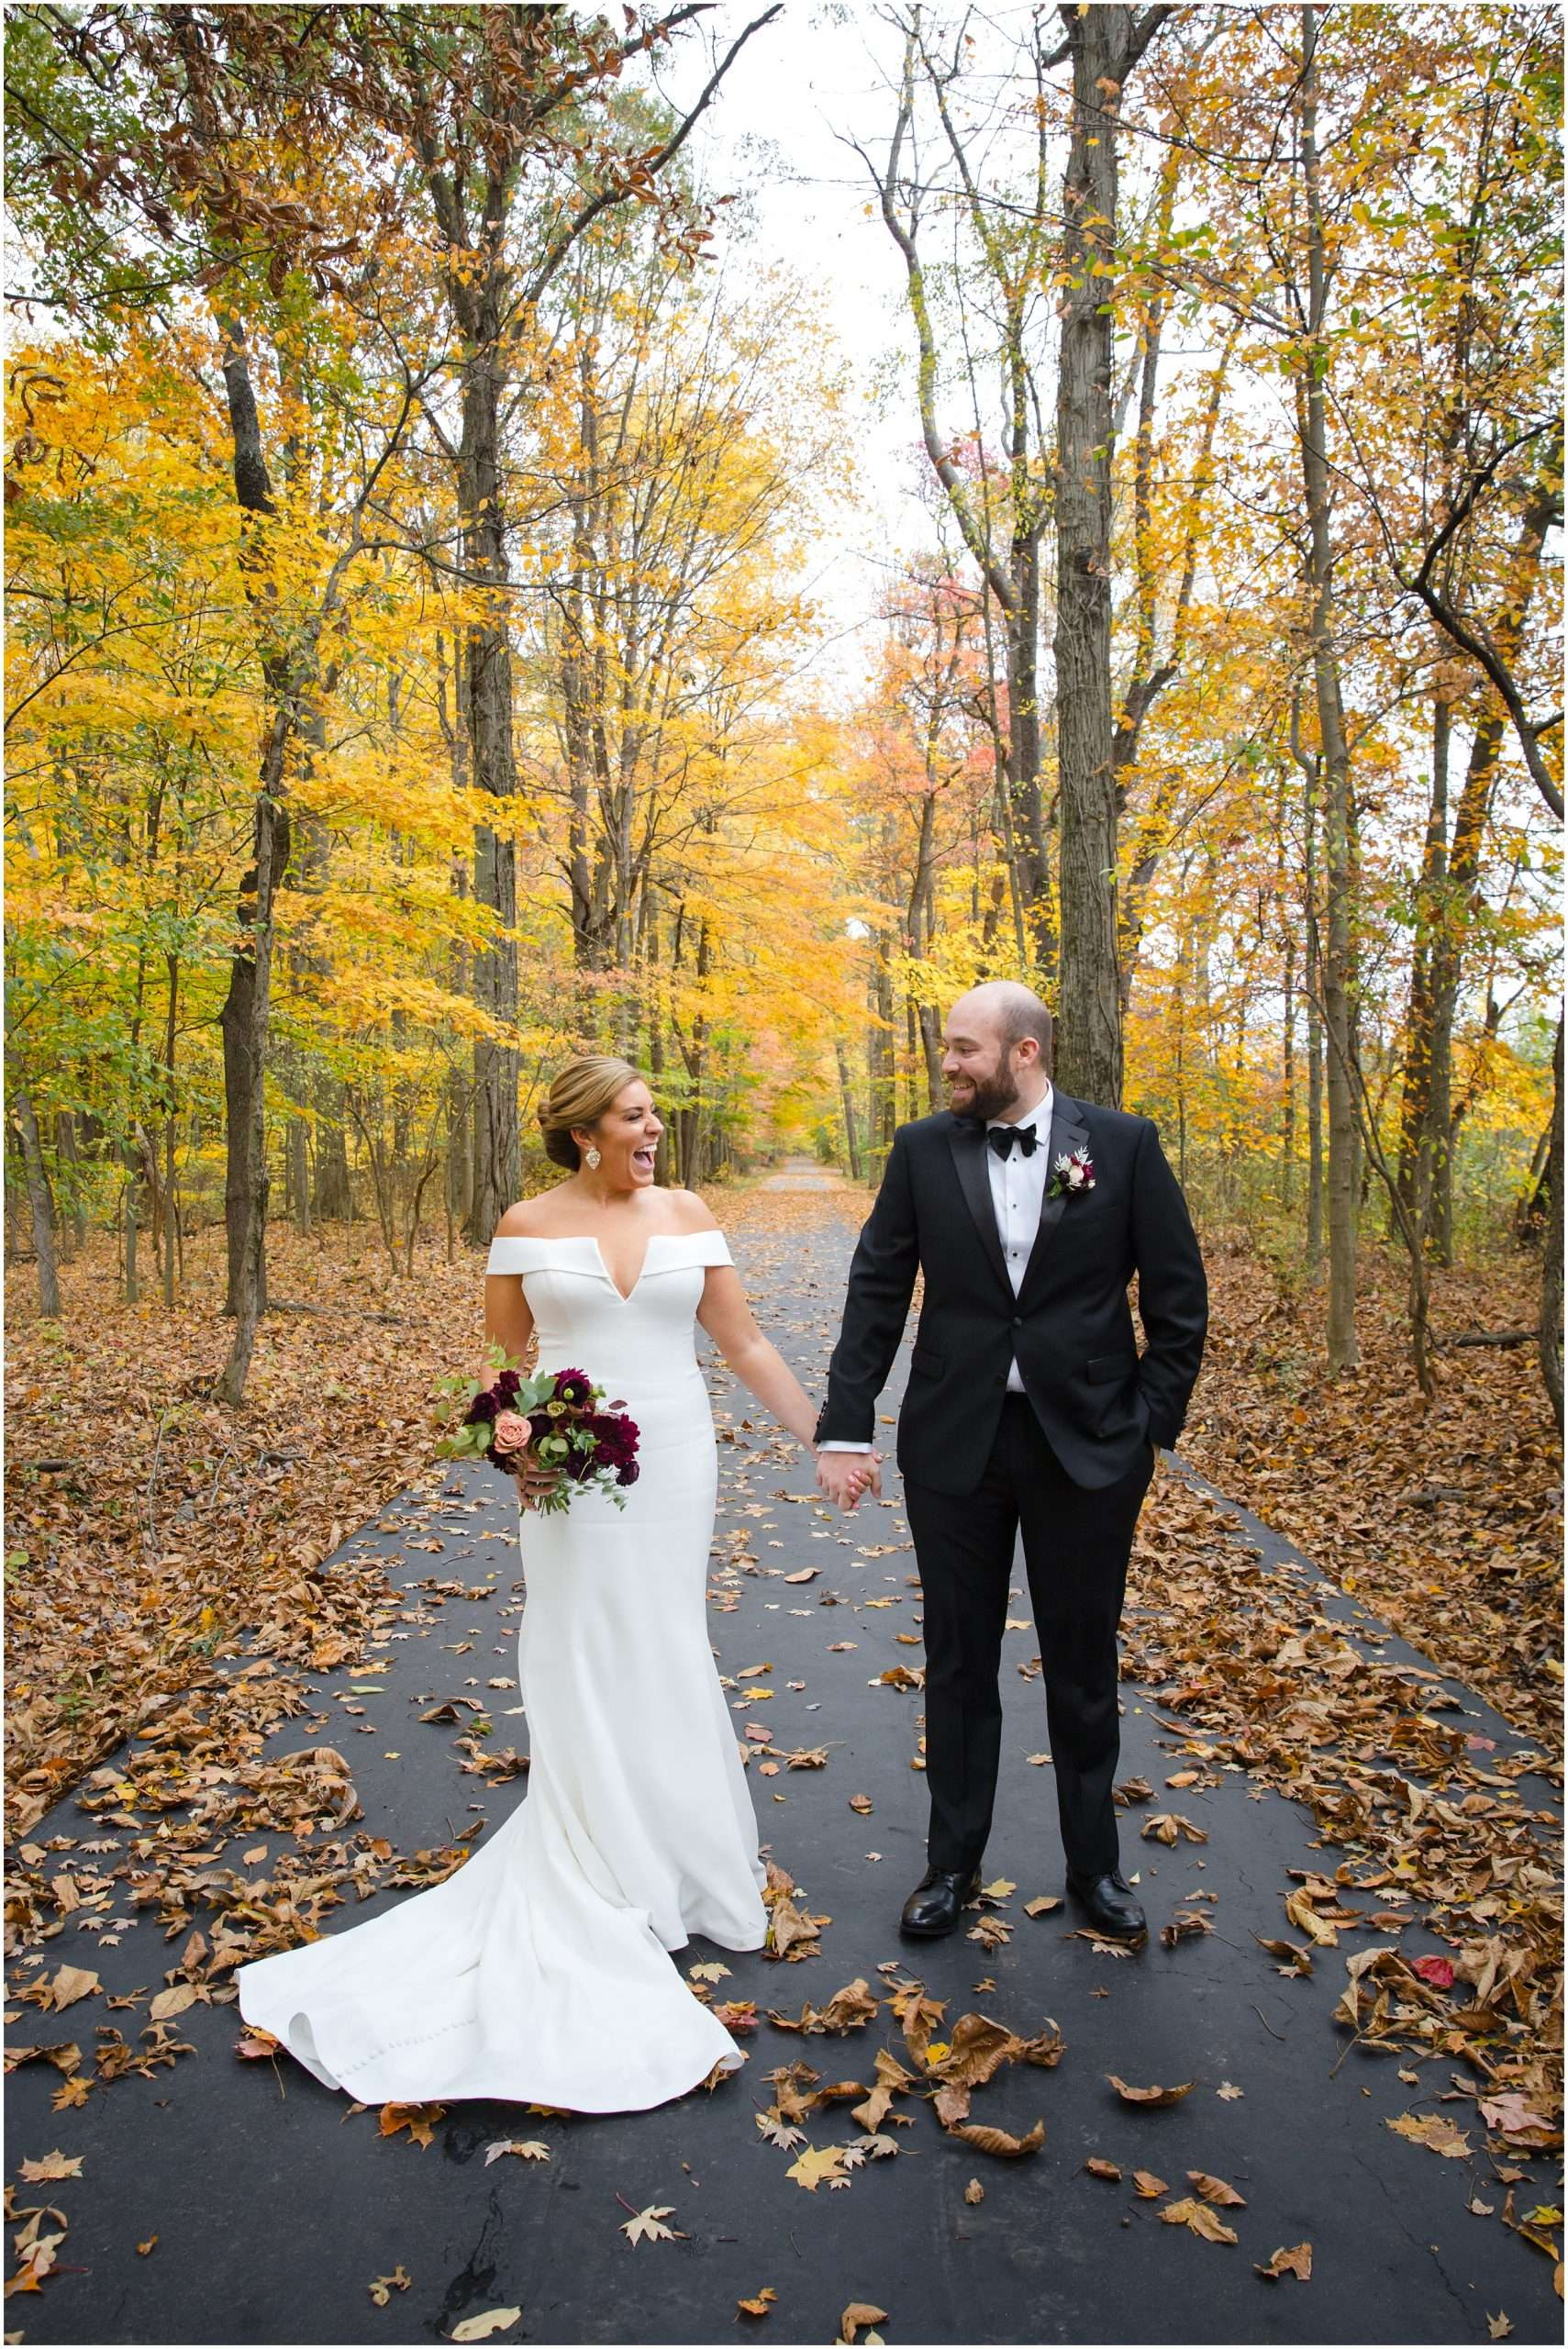 a caucasian bride and groom are holding hands and laughing in the woods on a colorful fall day